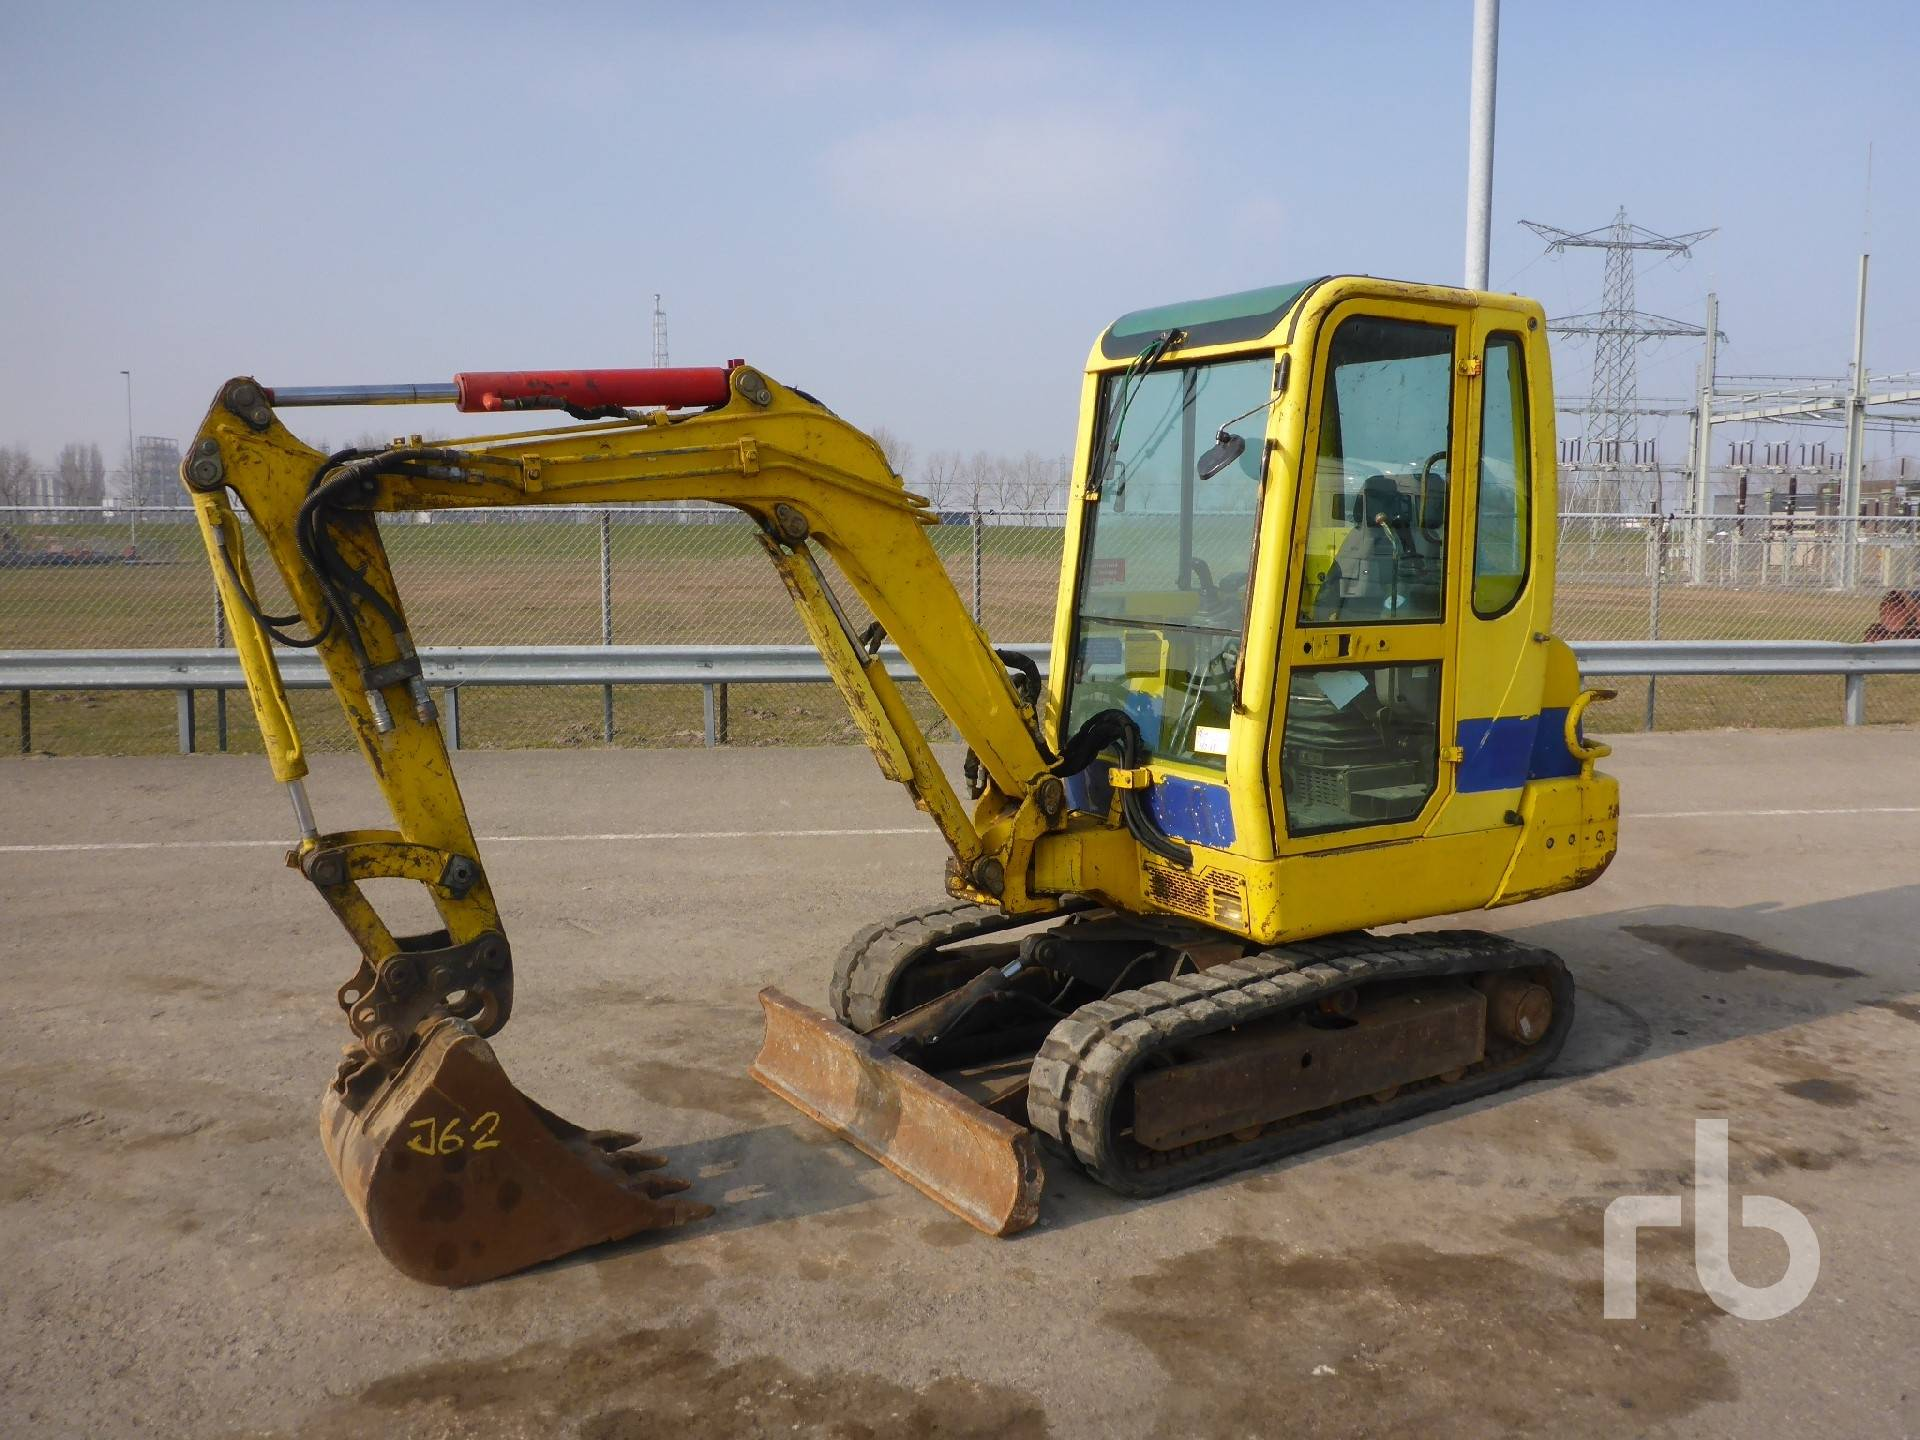 microbagger kaufen das sind nerdy whereisrosie. Black Bedroom Furniture Sets. Home Design Ideas